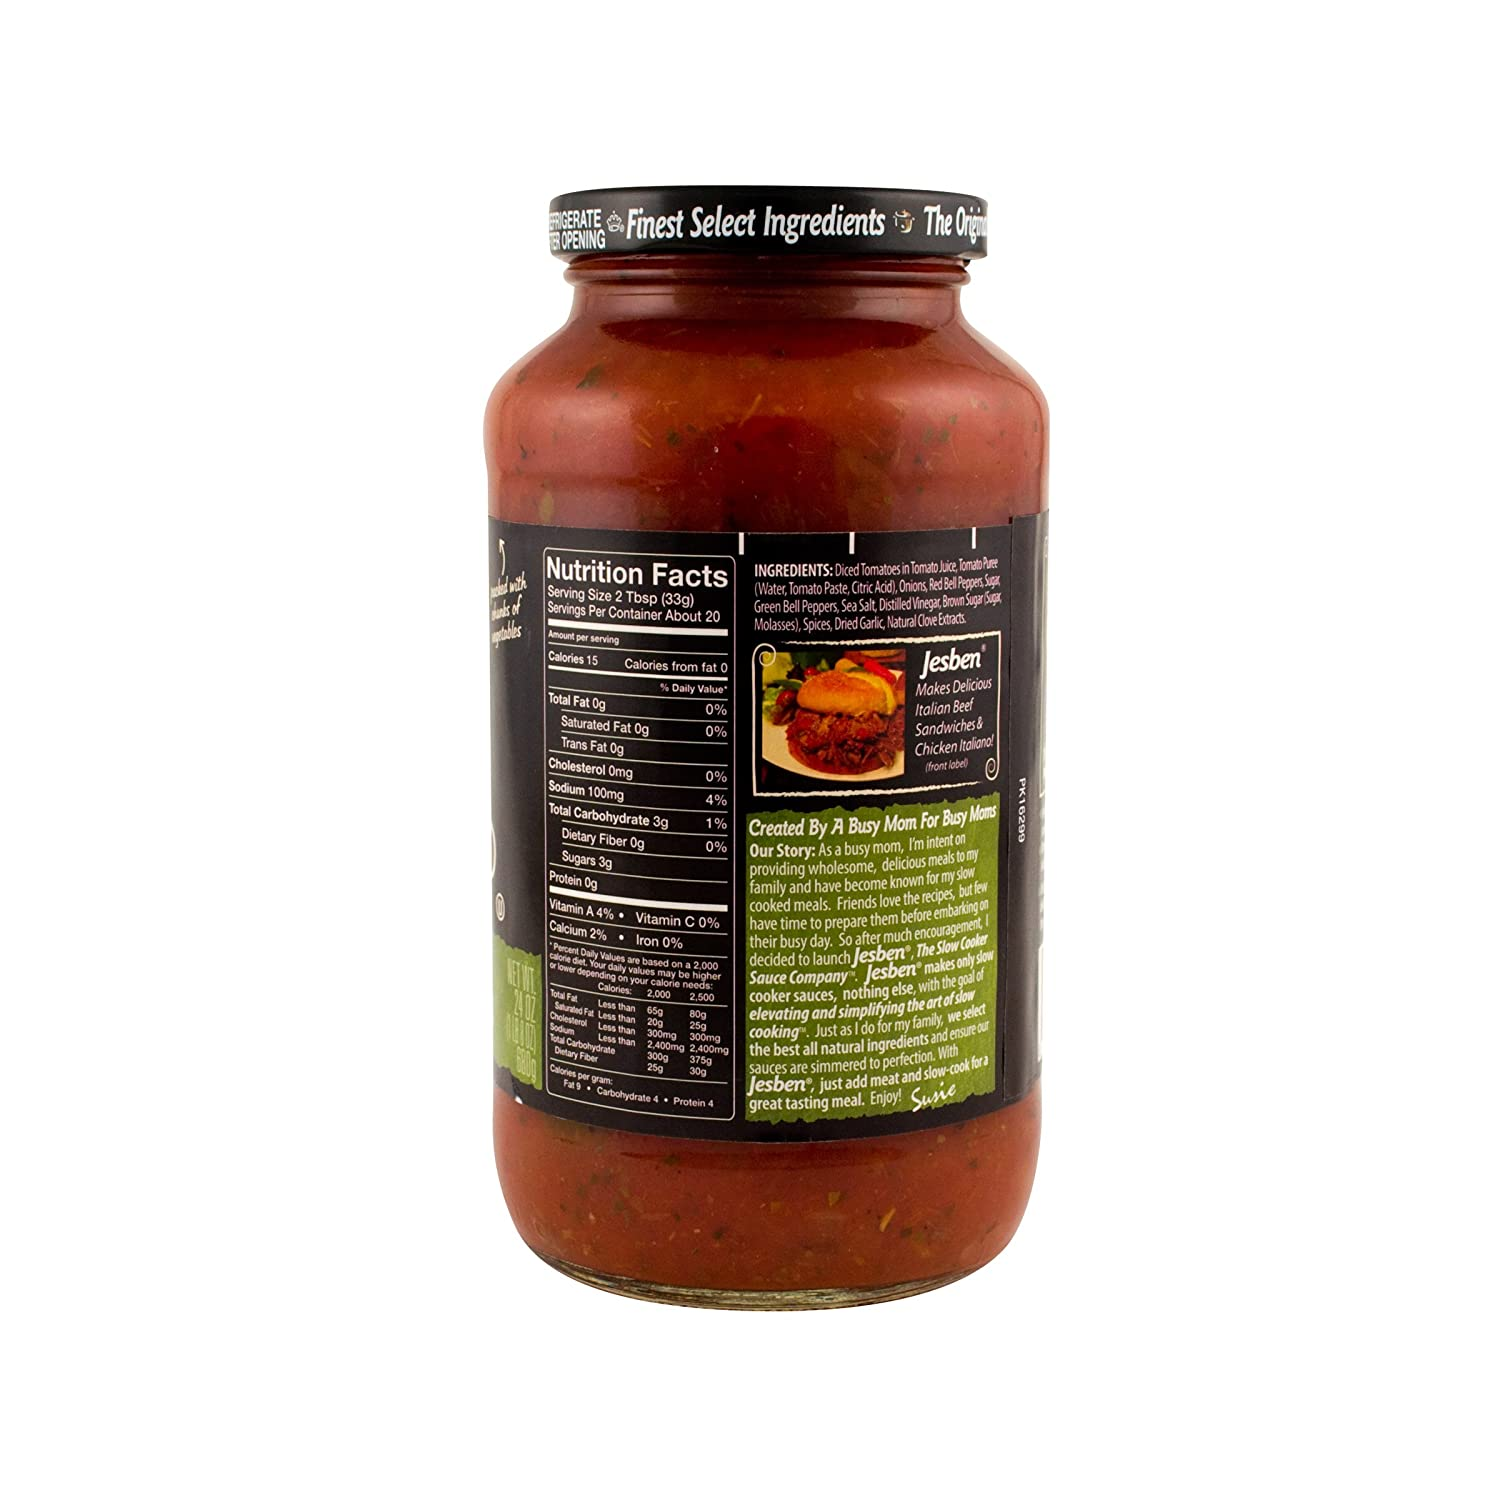 Amazon.com : Jesben Slow Cooker Sauce Italian Tomato, Peppers & Herbs 24 oz : Sandwich Spreads : Grocery & Gourmet Food